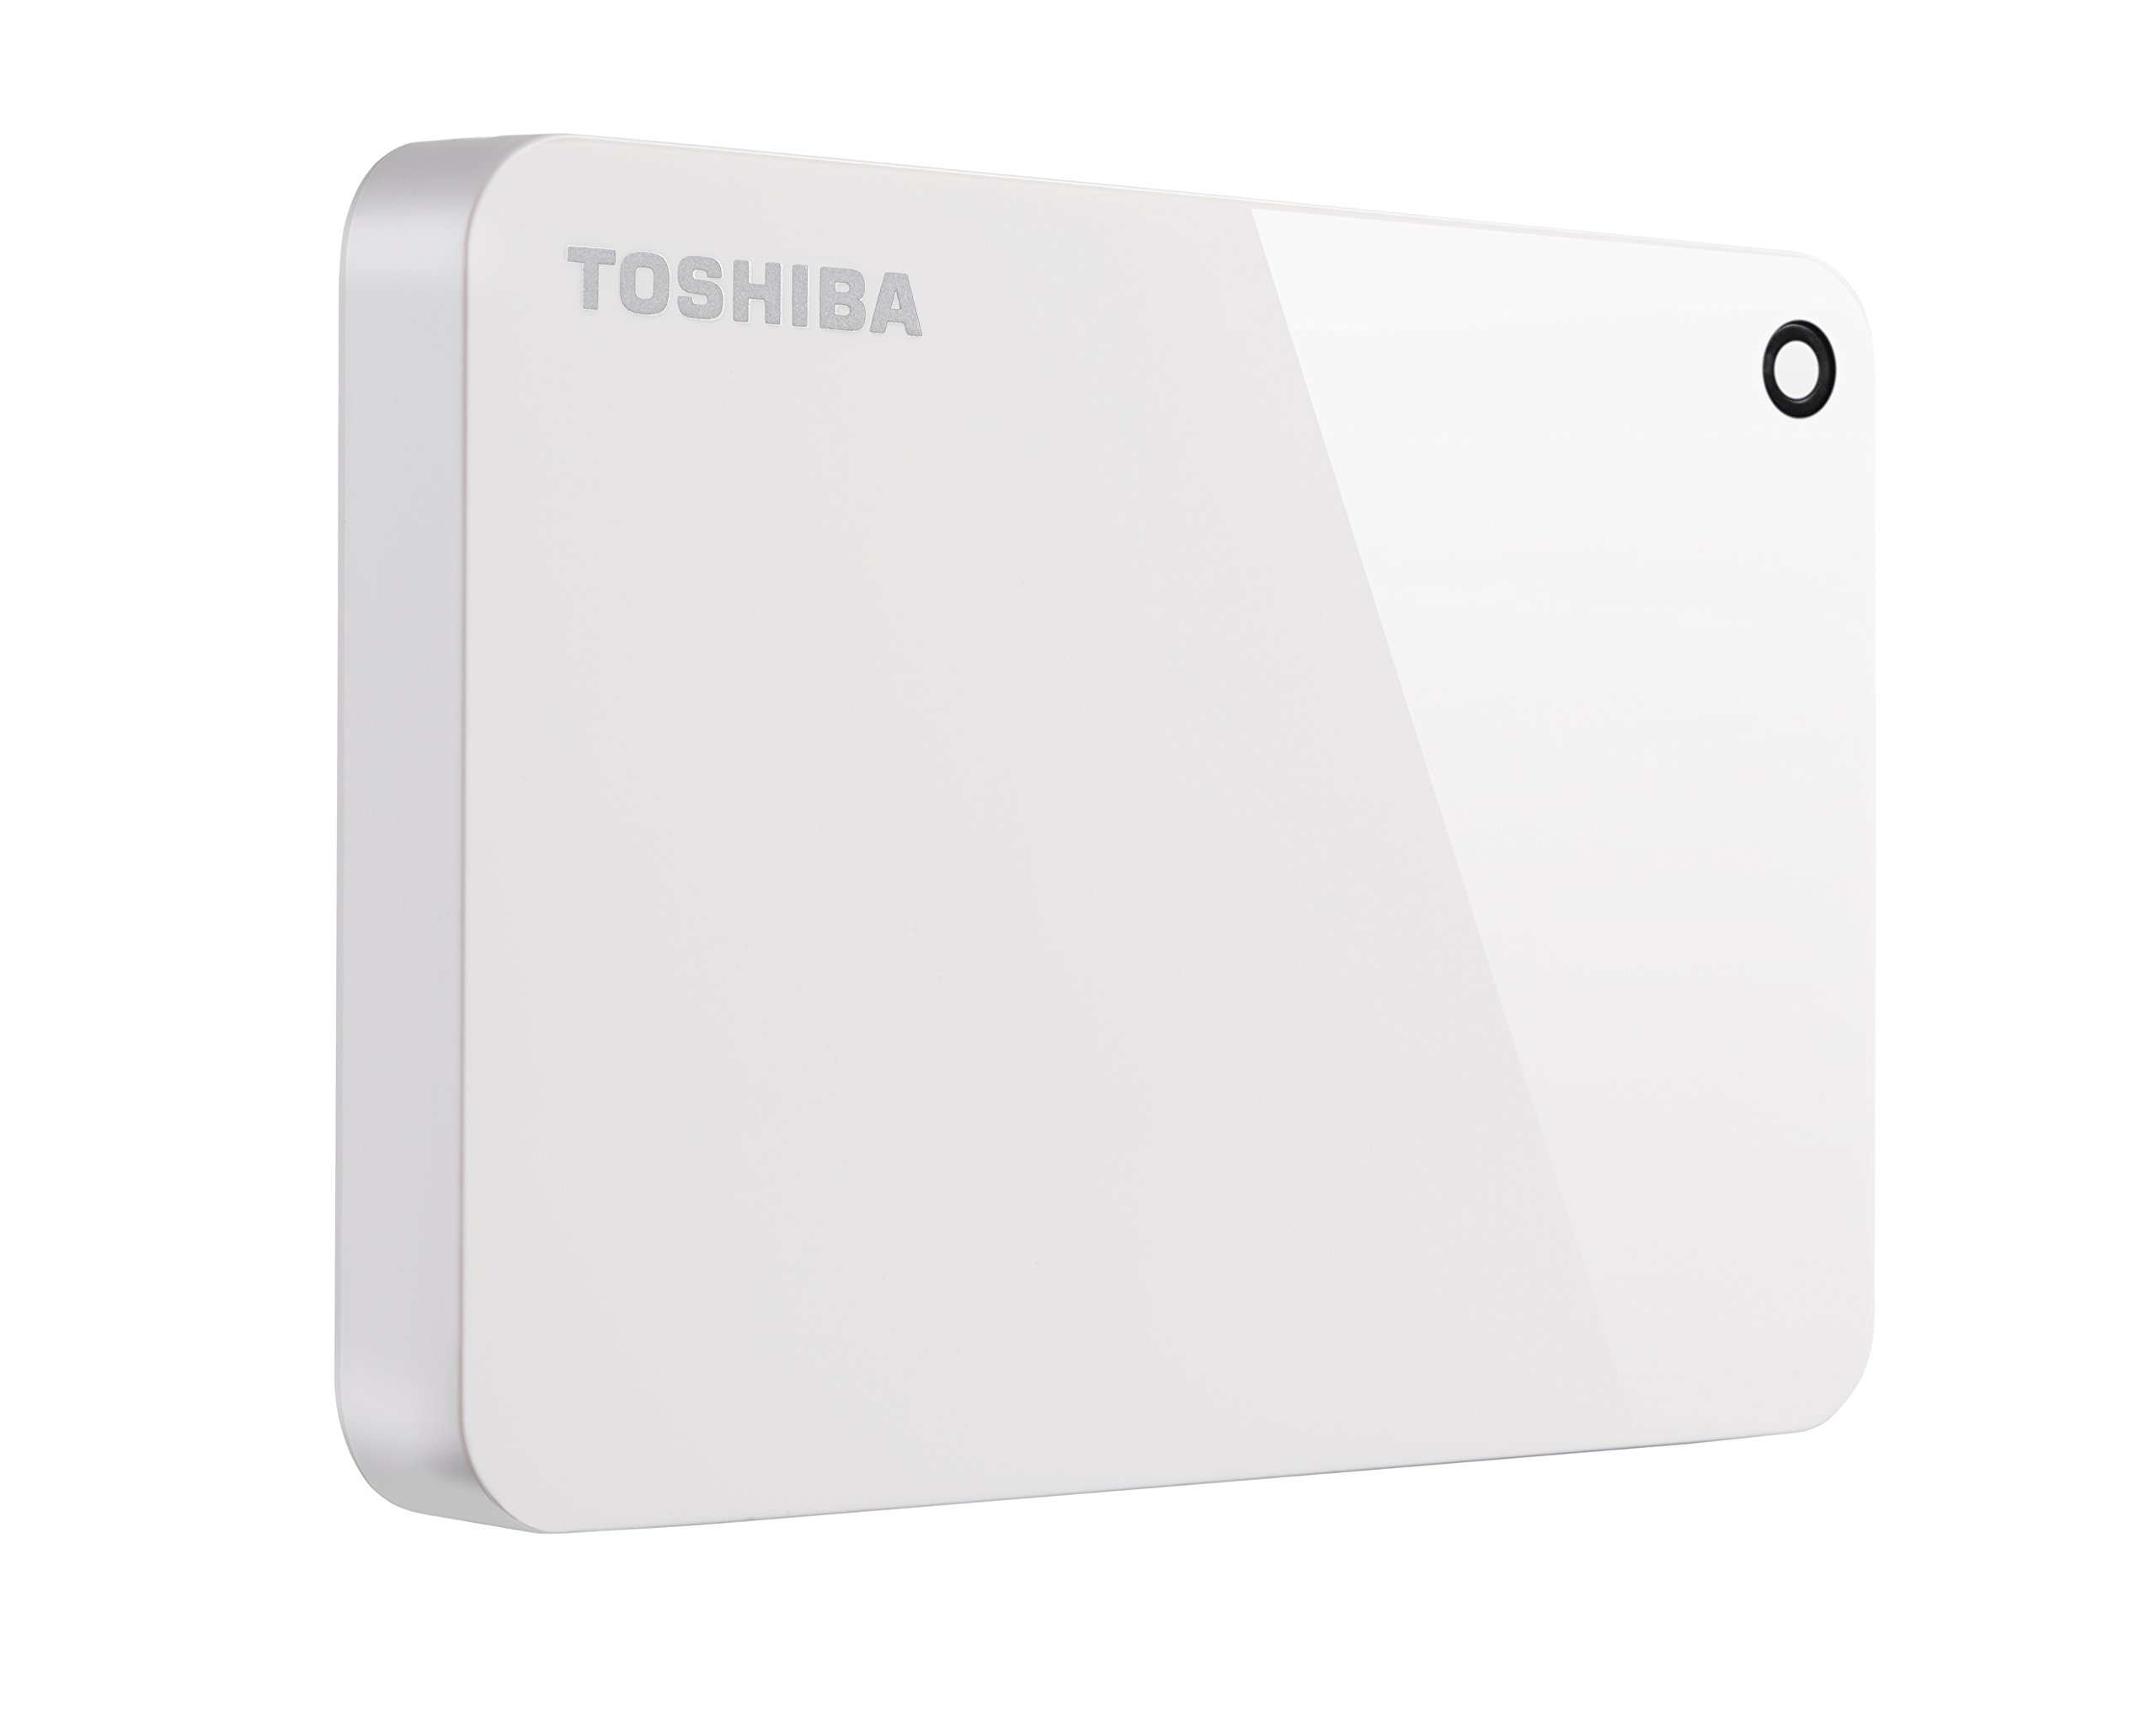 Toshiba Canvio Advance 2TB Portable External Hard Drive USB 3.0, White (HDTC920XW3AA) by Toshiba (Image #1)